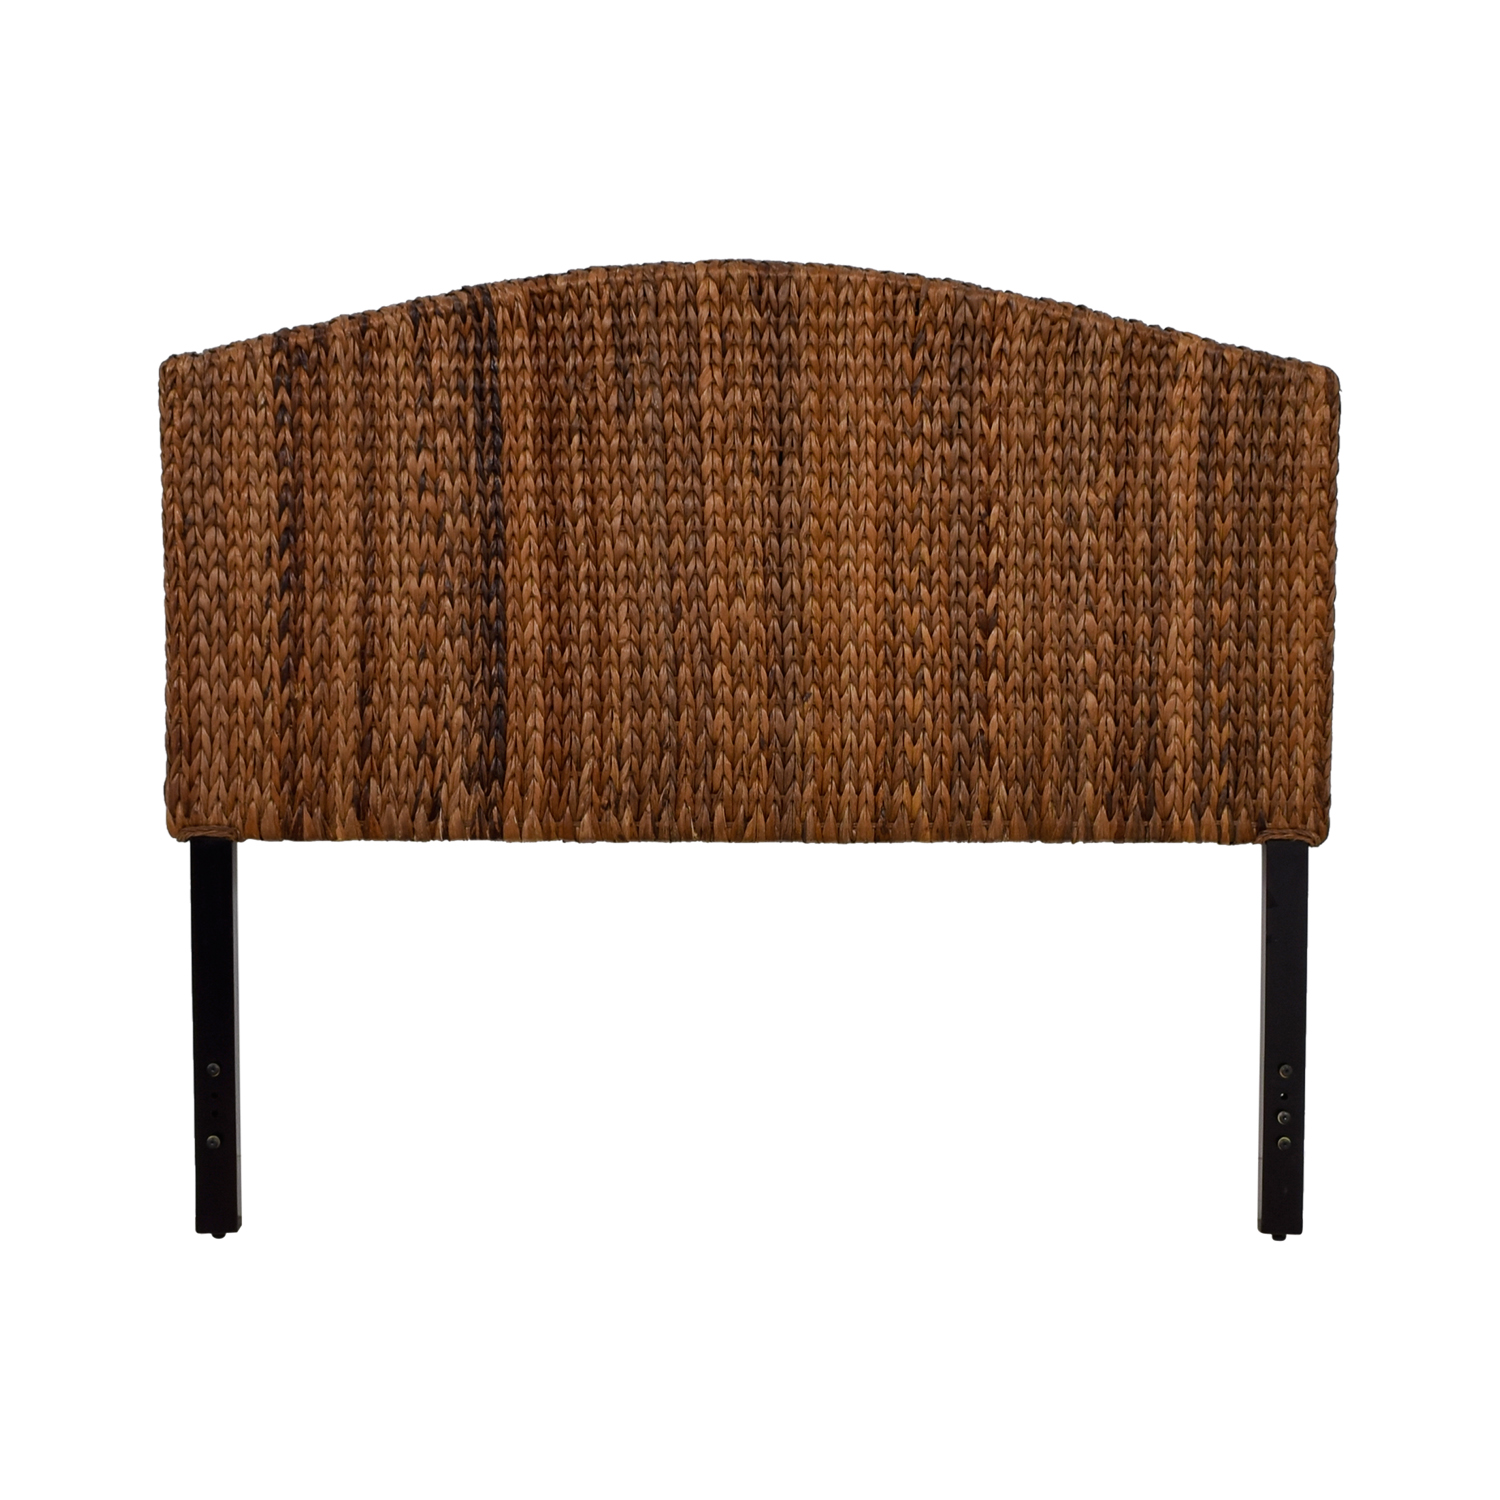 OFF Espresso Banana Leaf Woven Queen Headboard Beds - Banana leaf coffee table